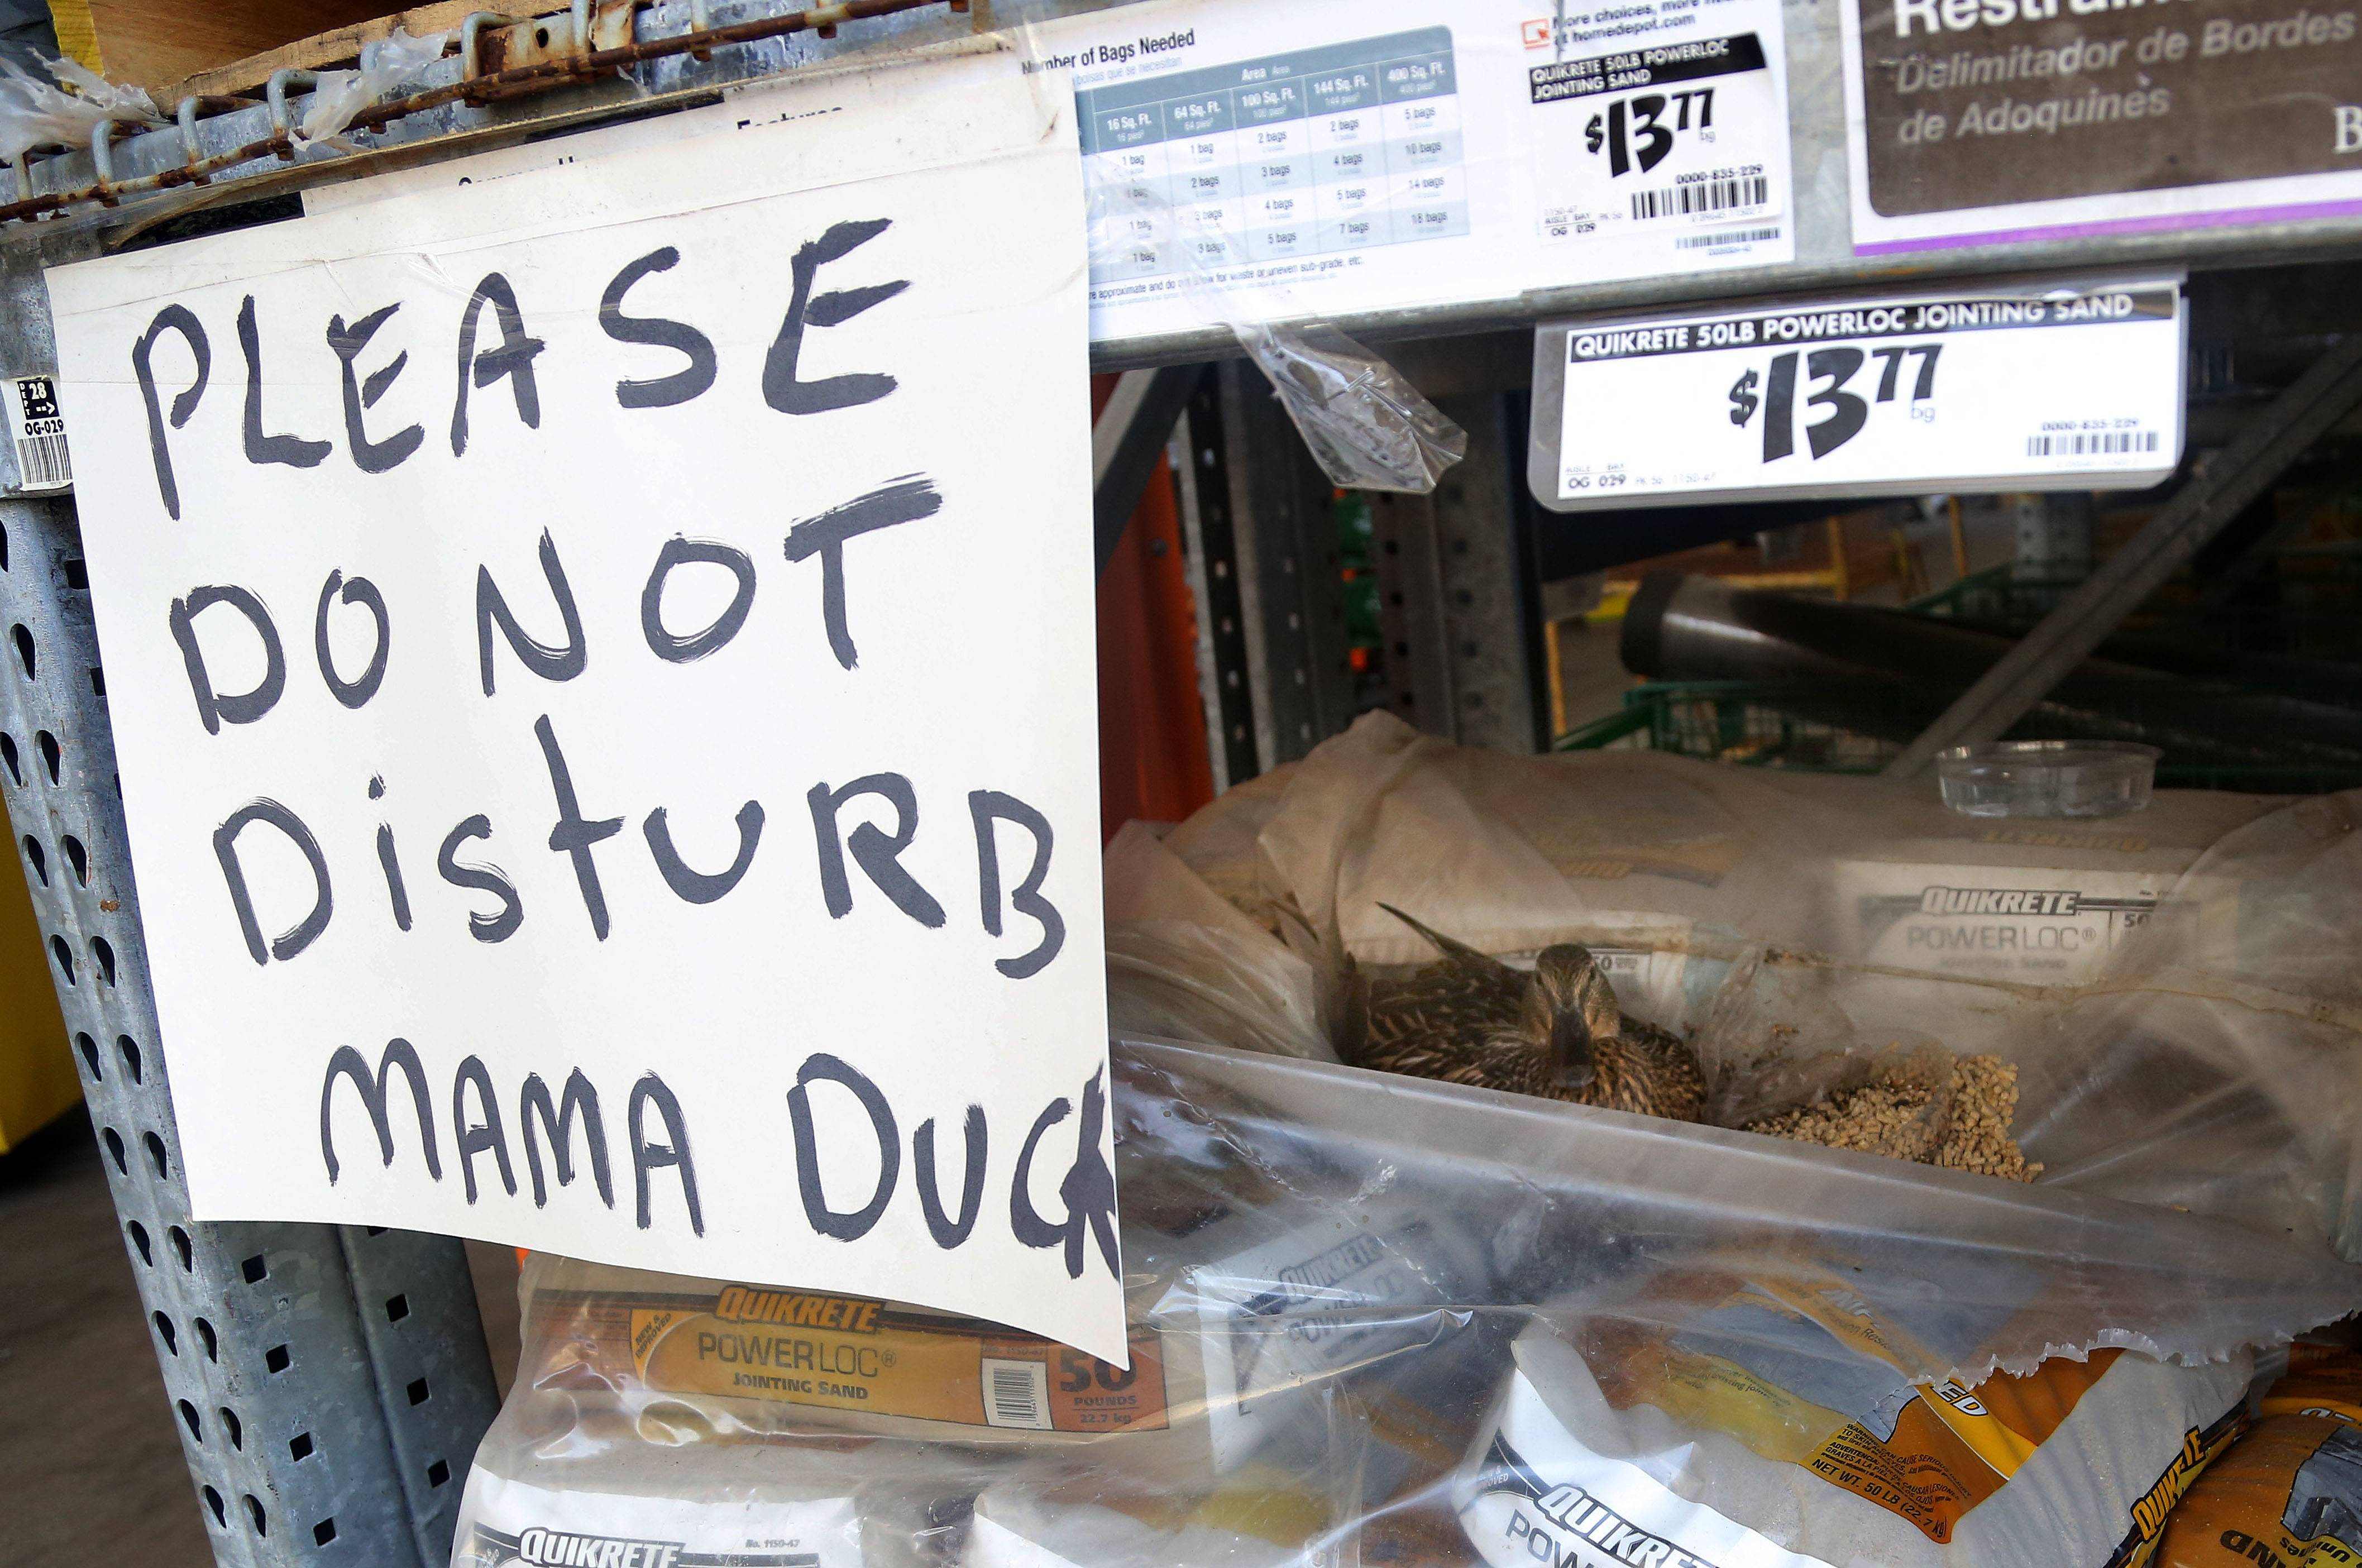 A mother duck decided to lay her eggs in a pallet of paver block sand bags at the Home Depot in Gurnee. Employees have put up a sign to protect her and are feeding her until her ducklings hatch.